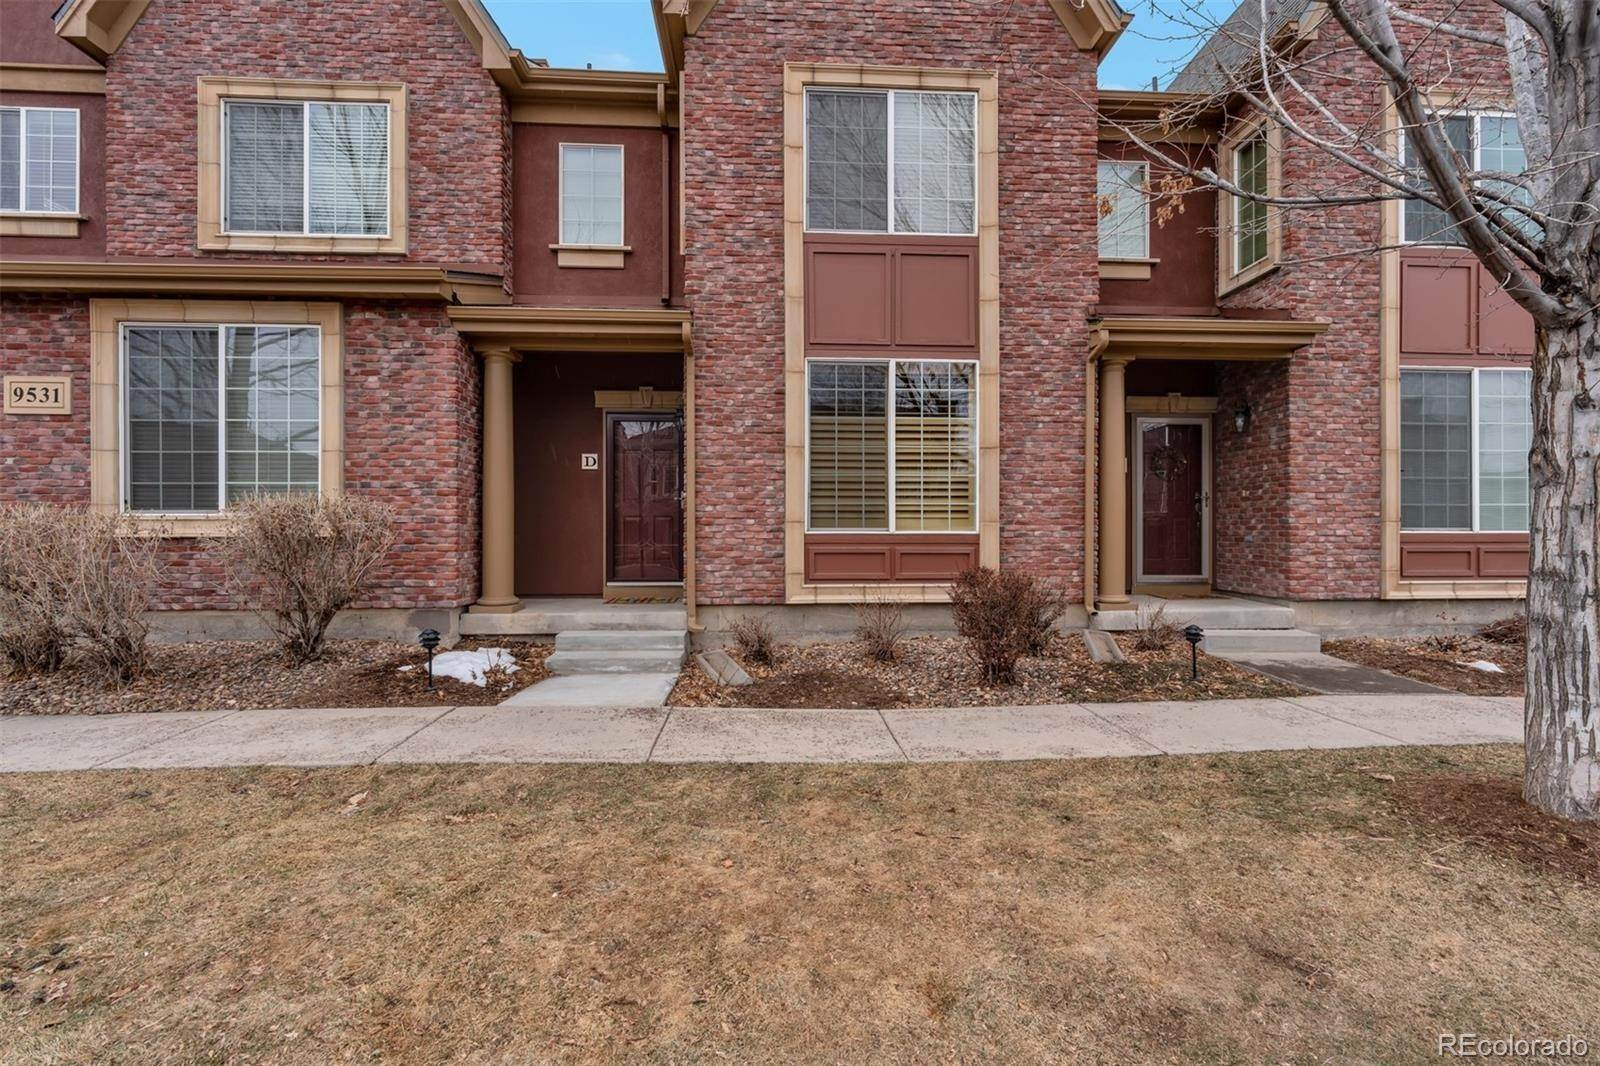 Condominiums en 9531 Cedarhurst Lane Highlands Ranch, Colorado 80129 Estados Unidos